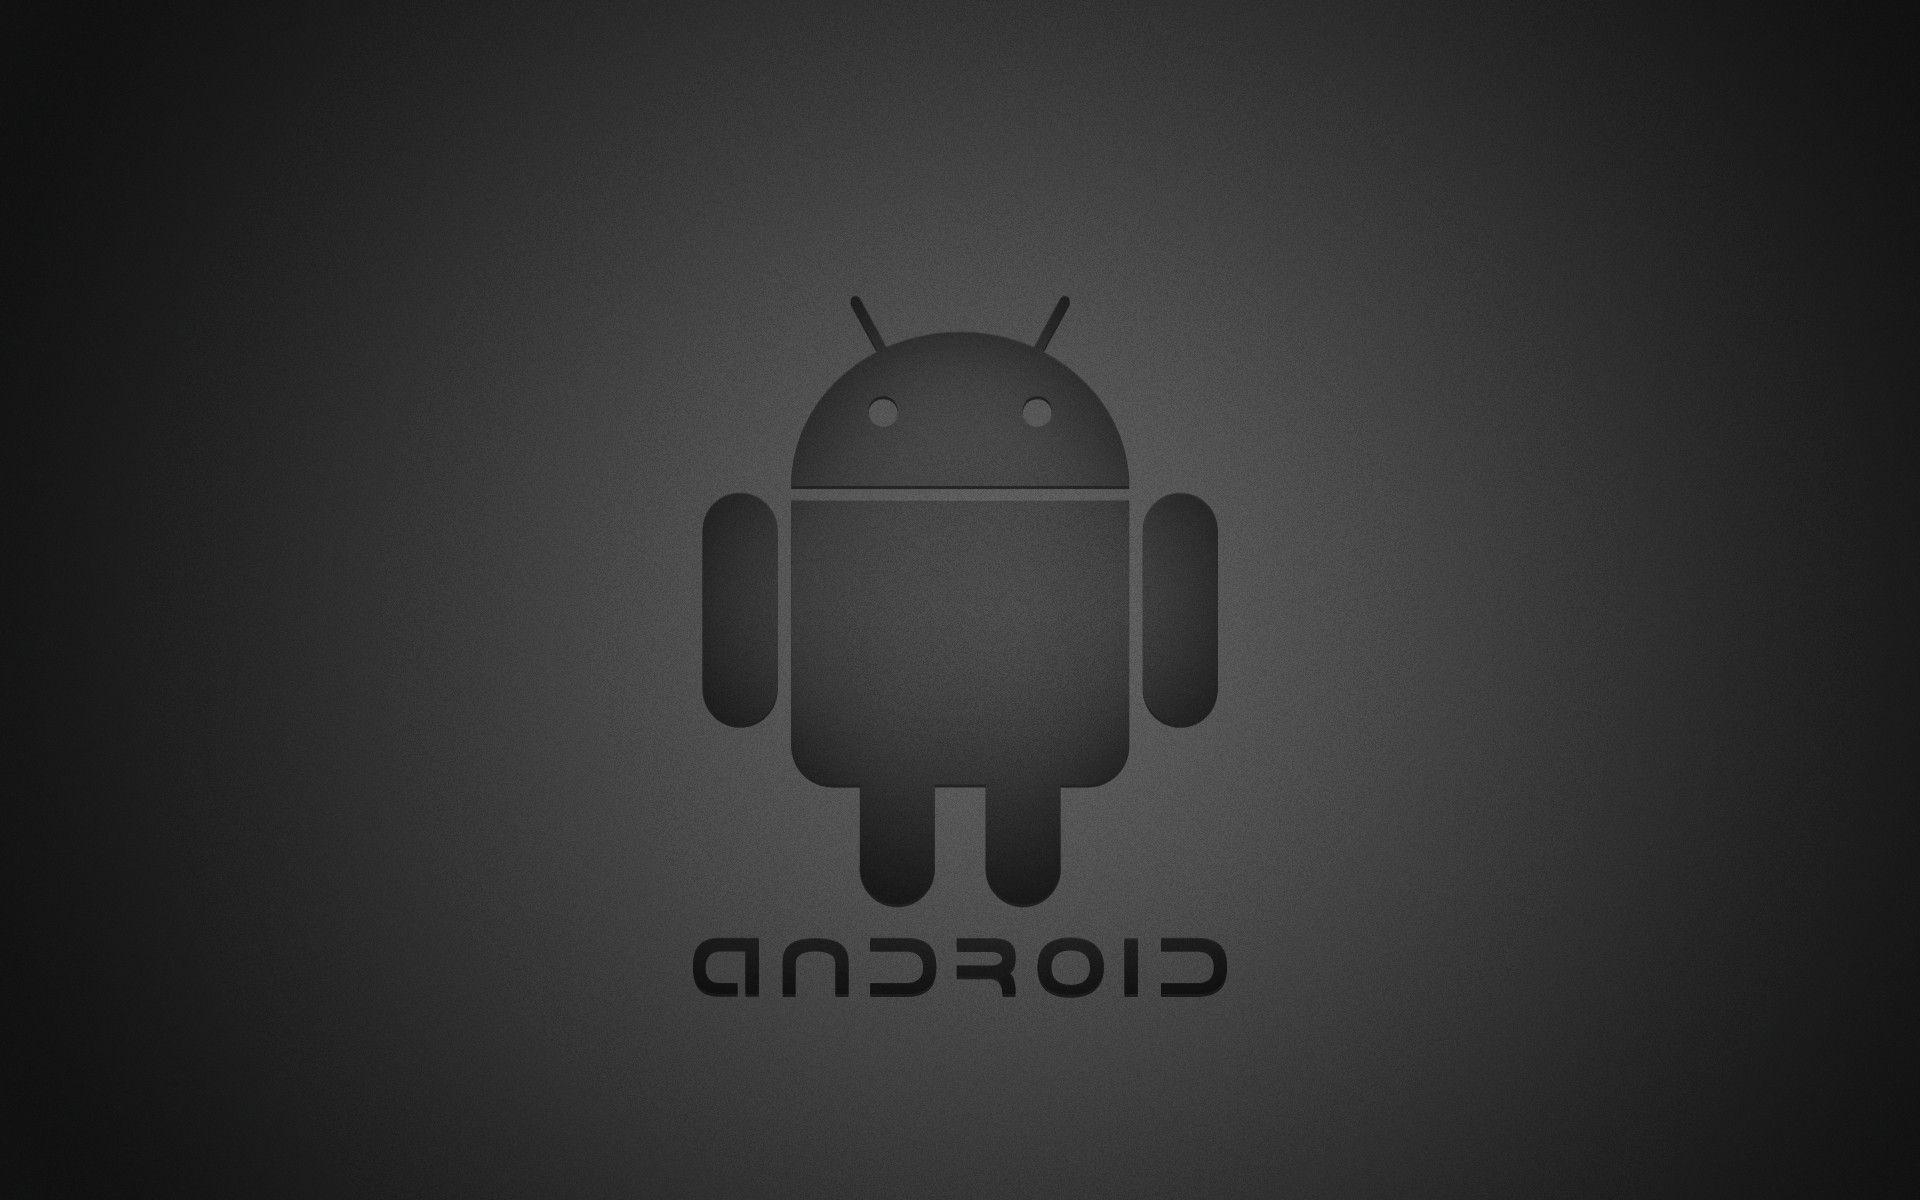 Android Kitkat Wallpaper For Android #5568 Wallpaper | High ...